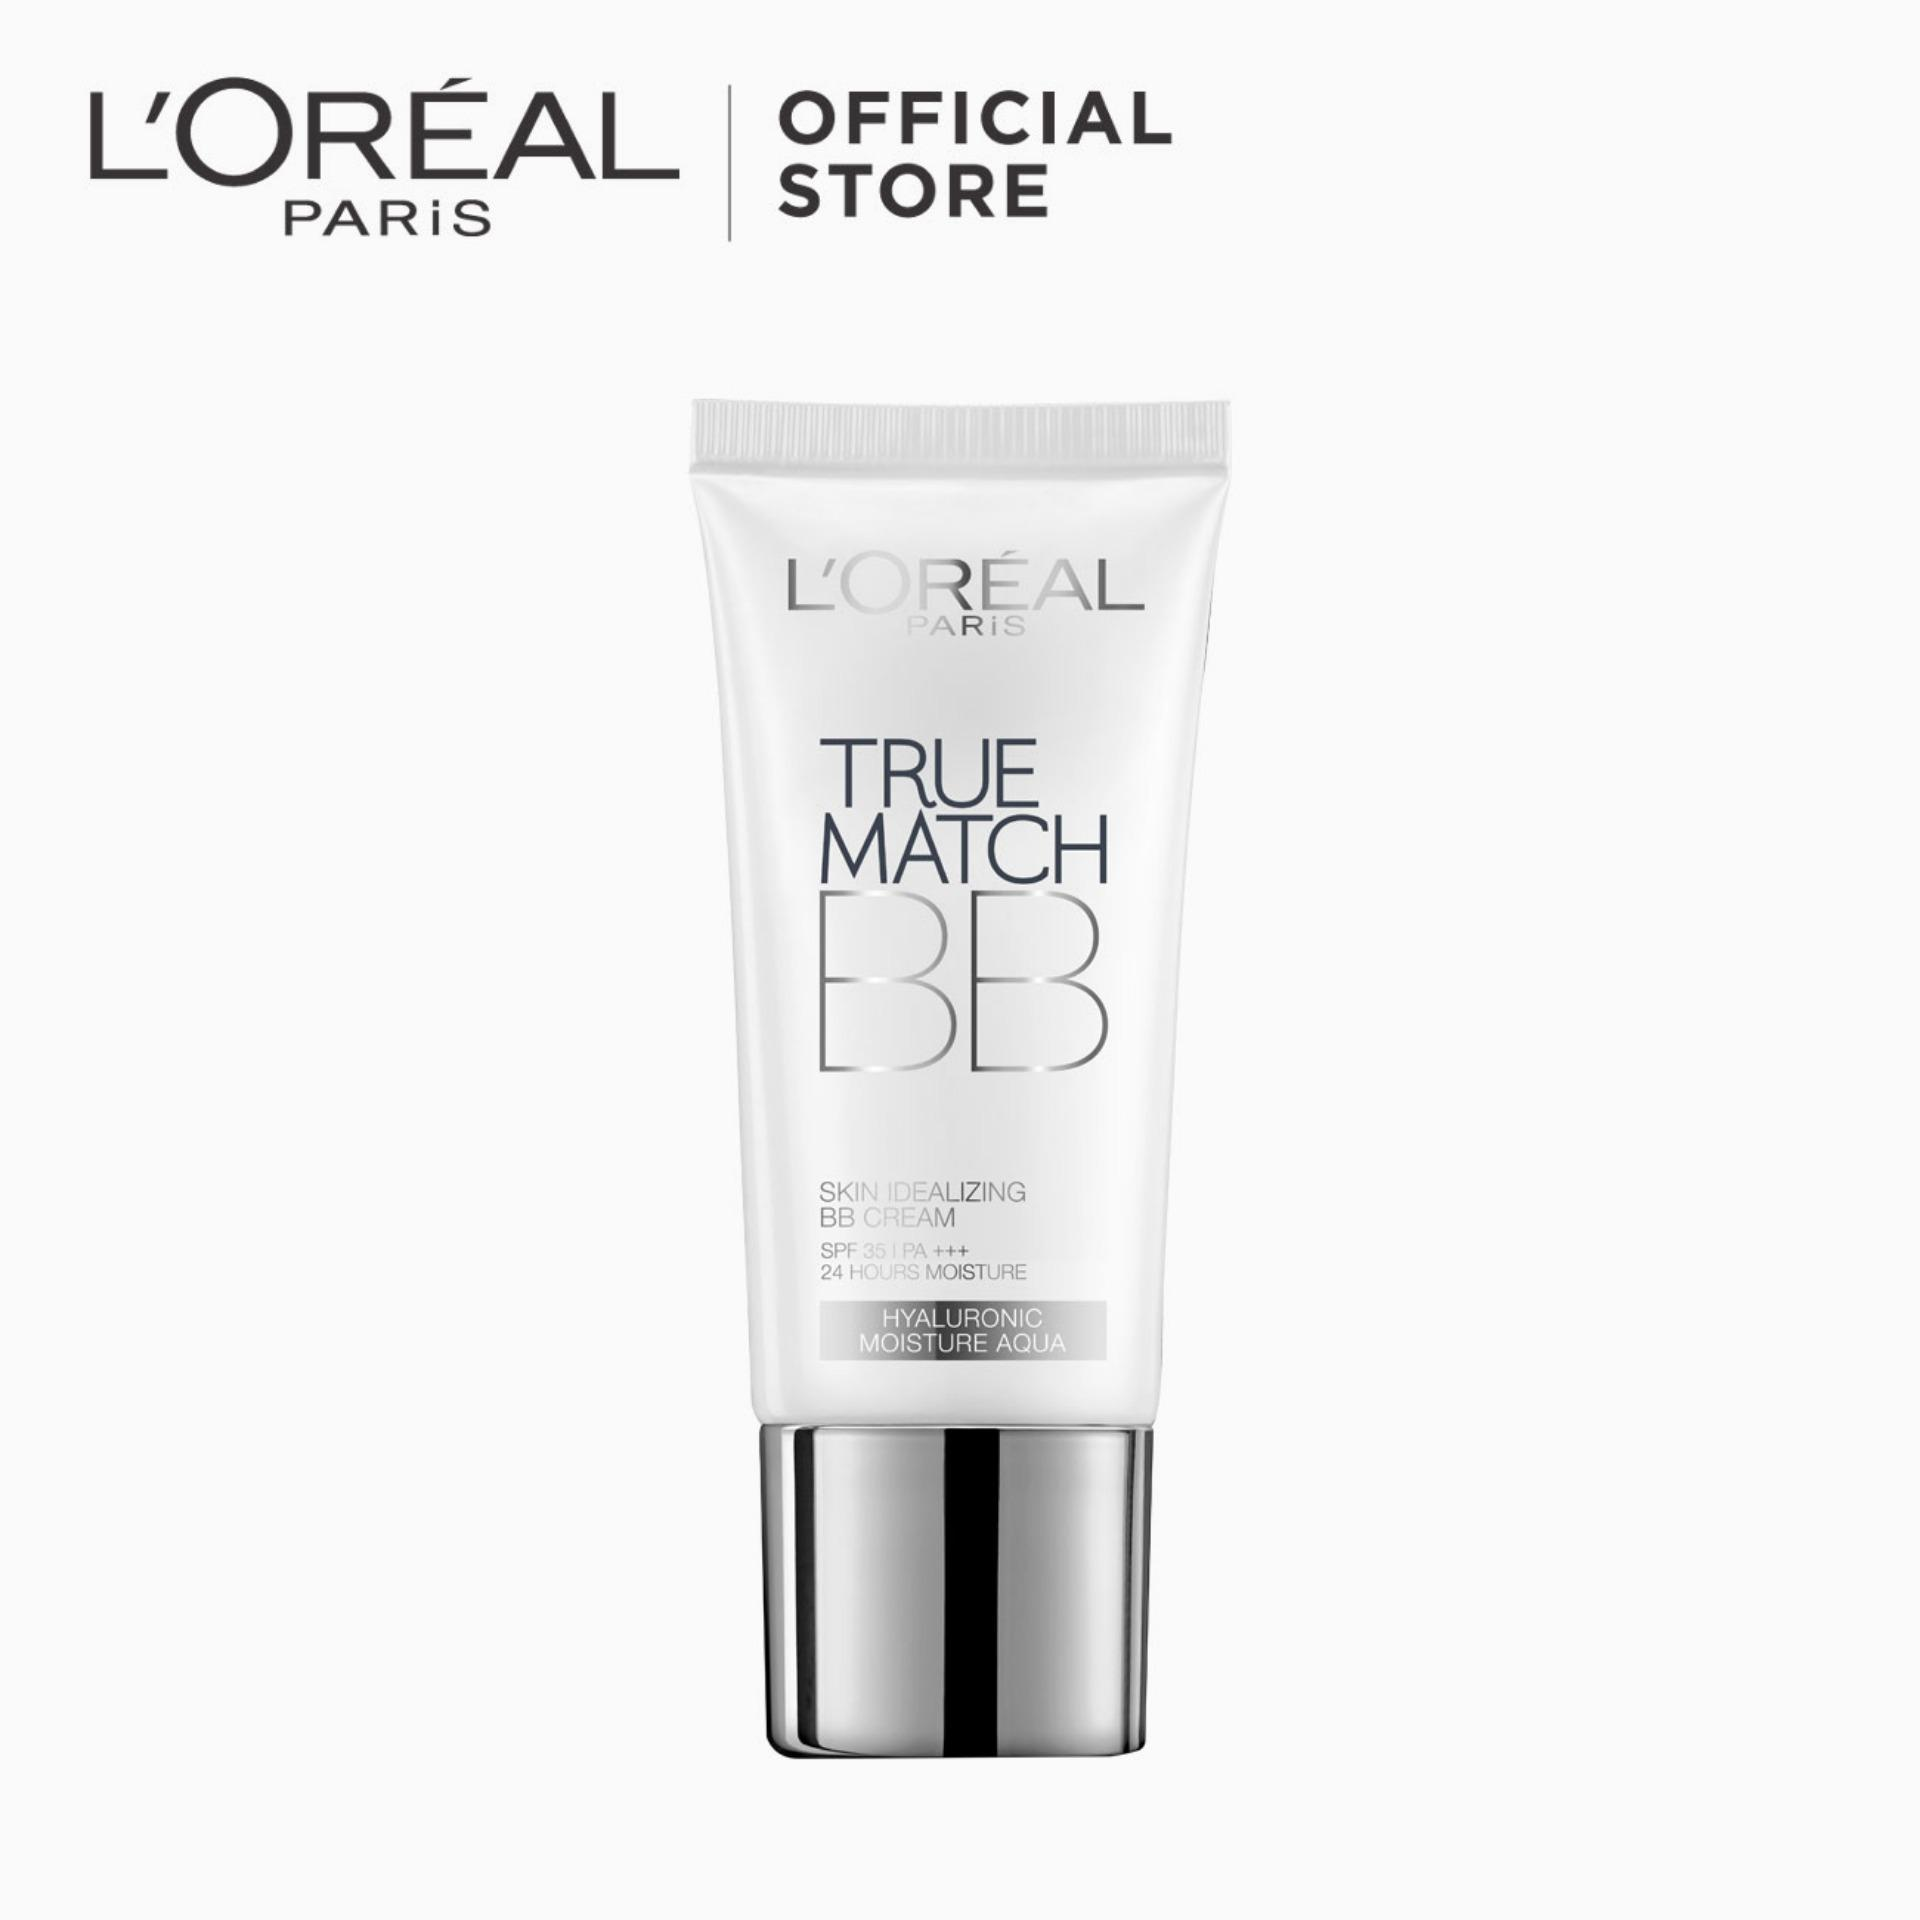 True Match Skin Color-Matching Bb Cream Spf35 Pa+++ By Loréal Paris By Loreal.